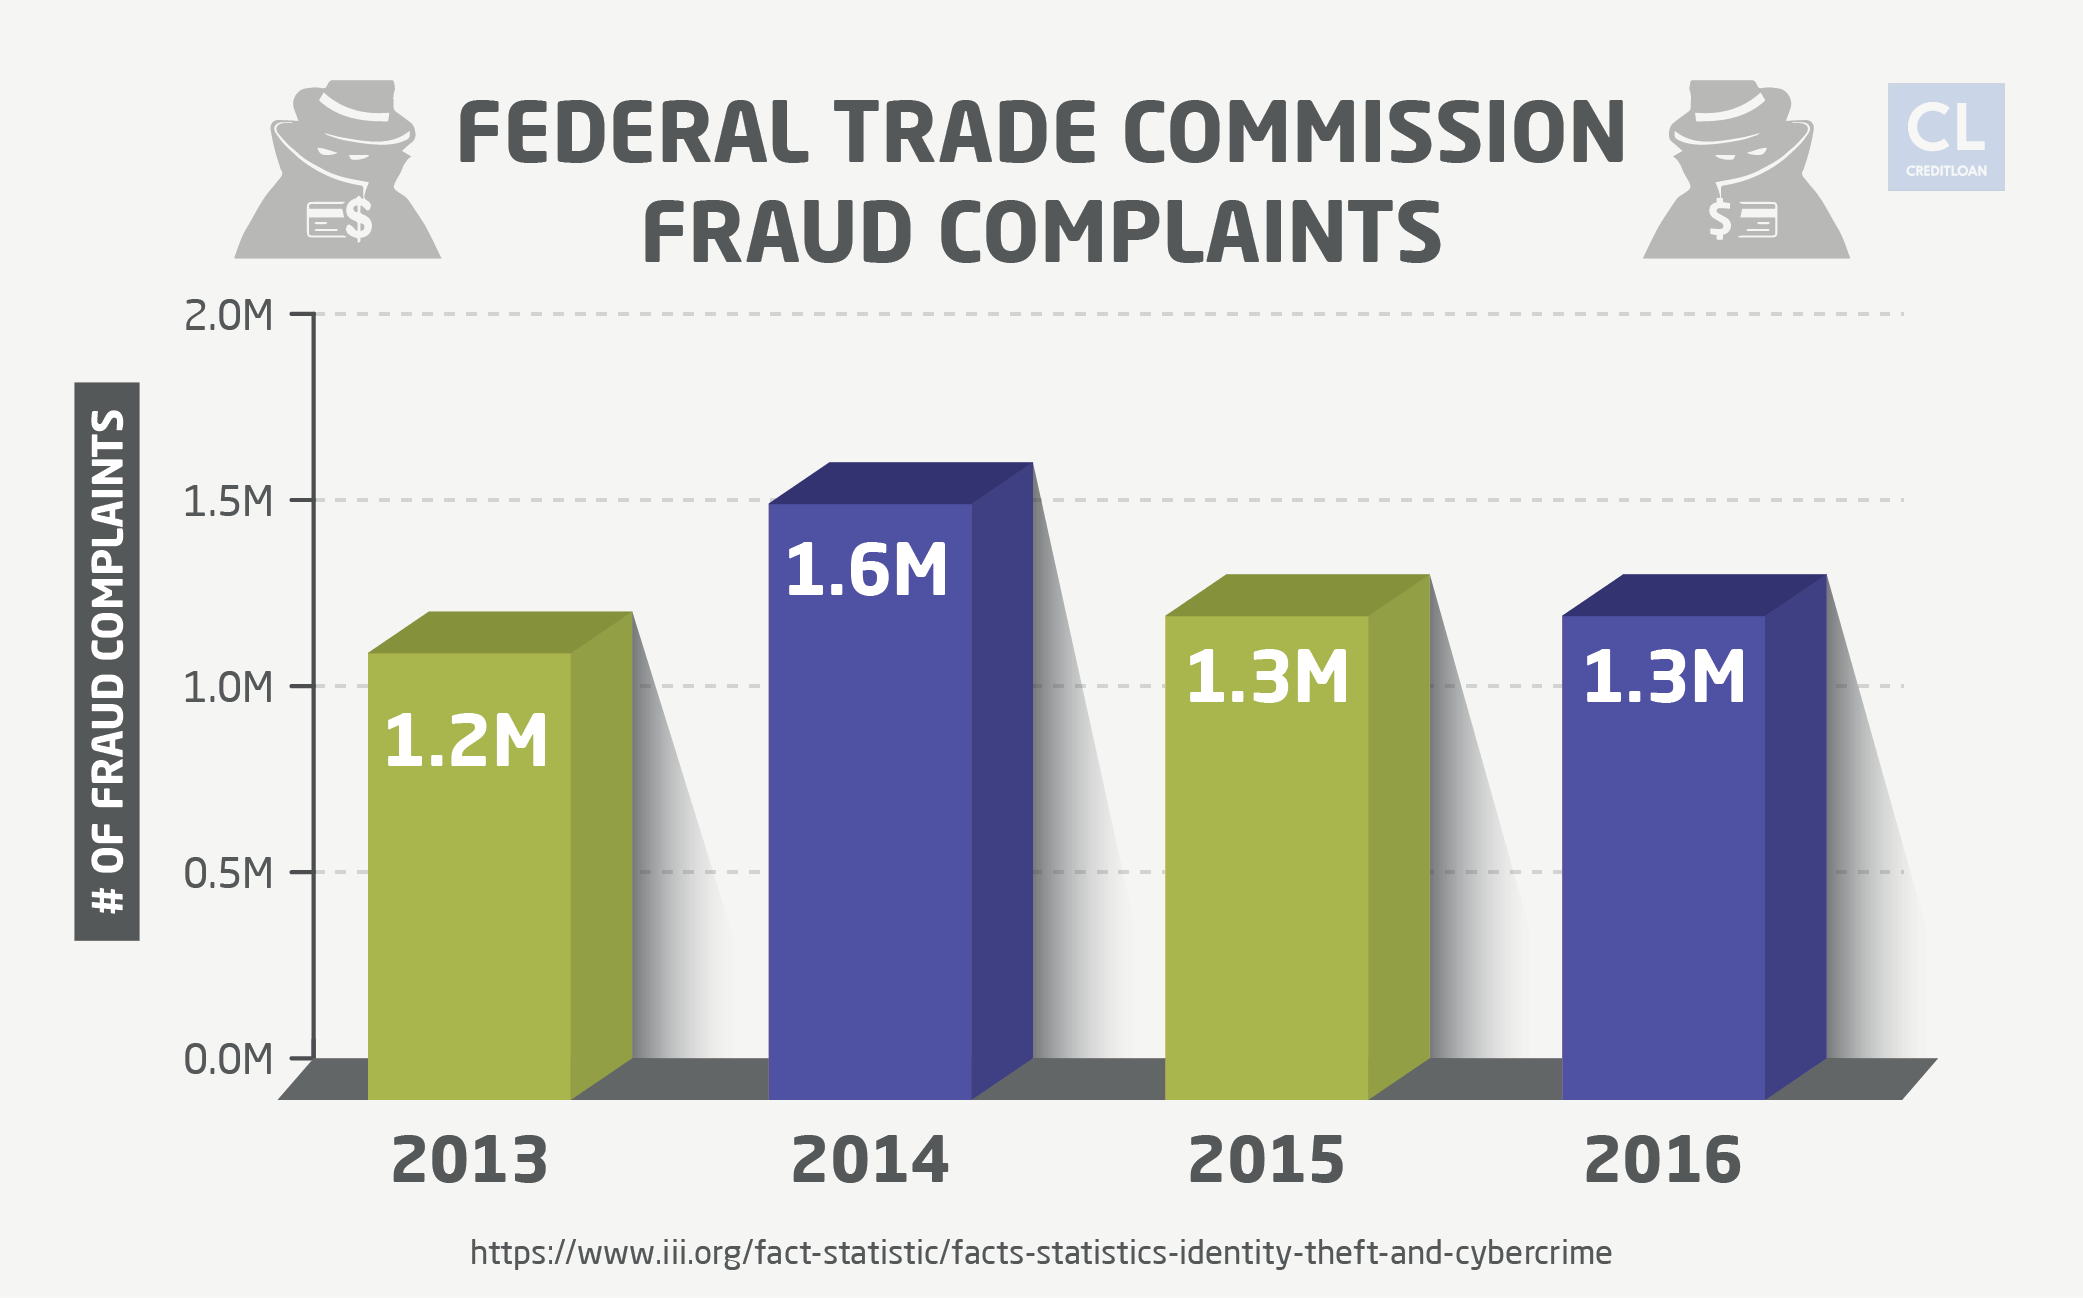 Federal Trade Commission Fraud Complaints from 2013-2016